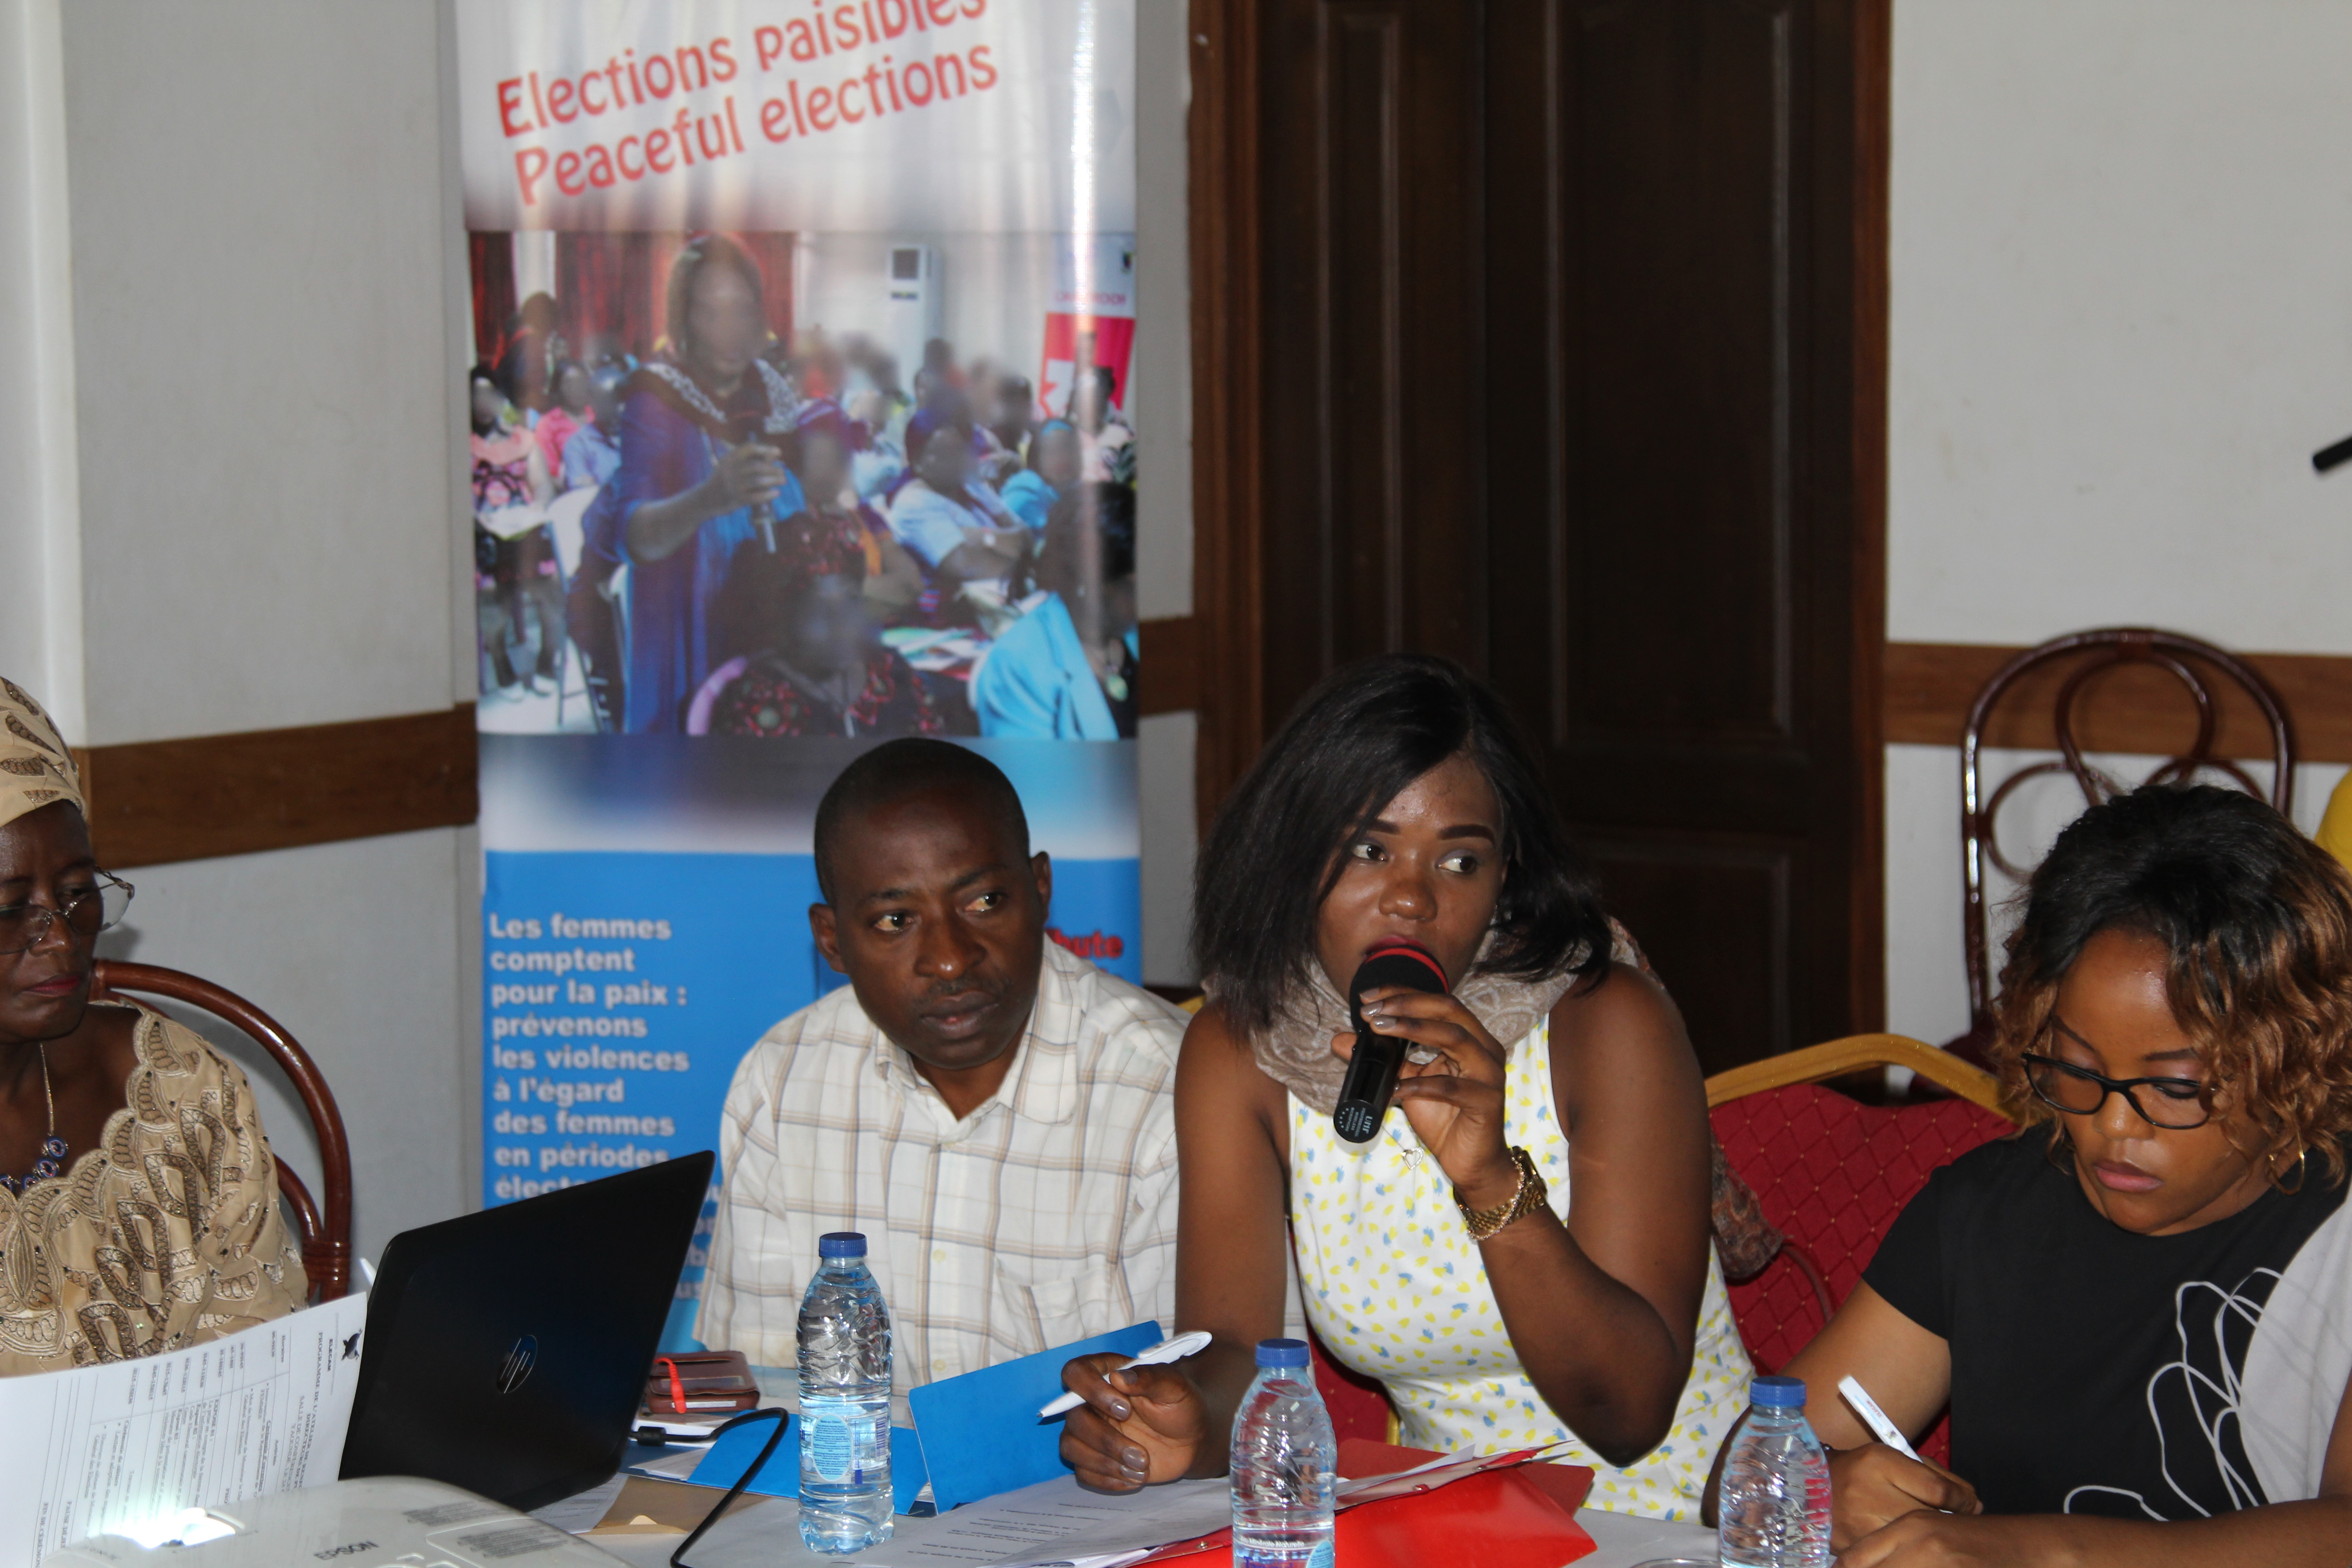 A cross section of media professionals at the workshop. Photo credit: Nlend Emanuel/UN Women